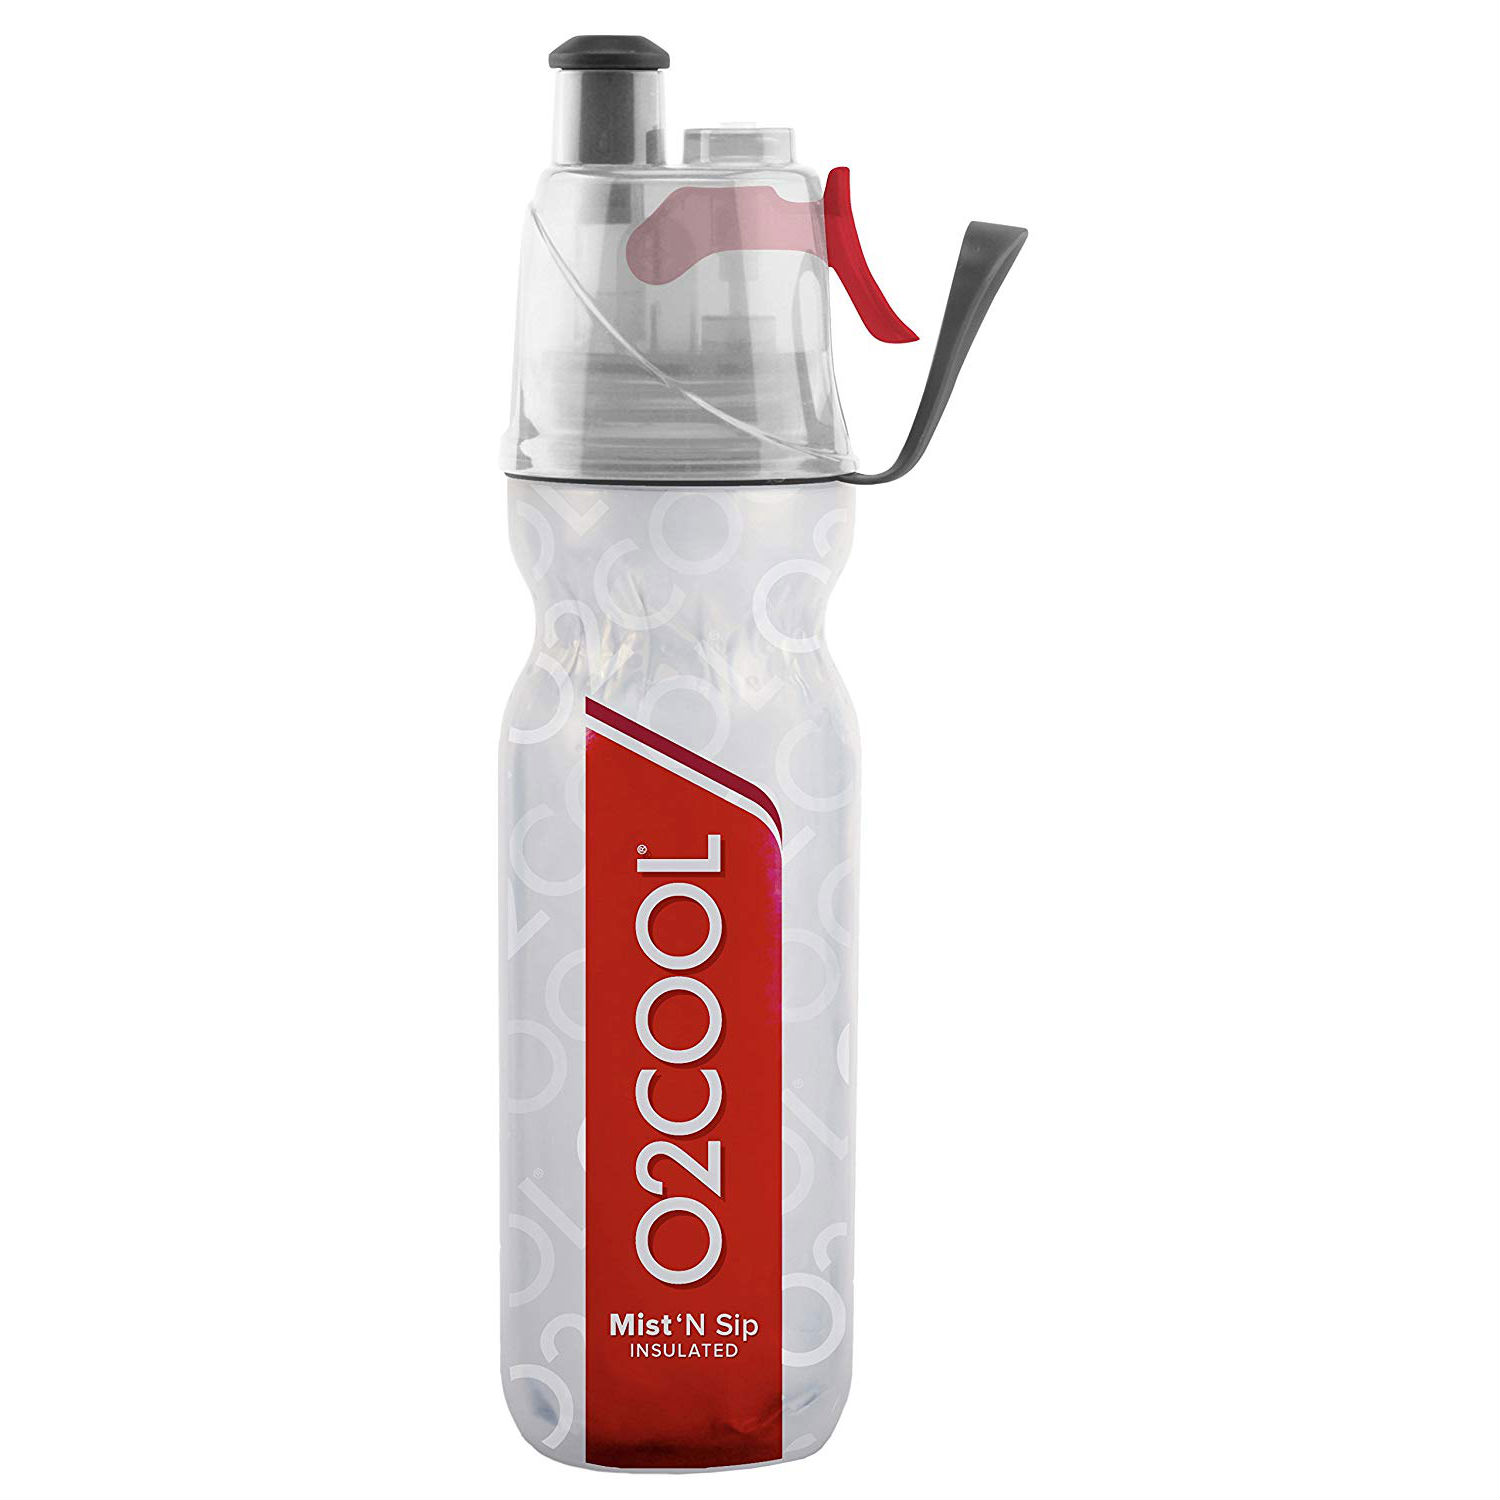 O2COOL ArcticSqueeze Mist 'N Sip- red